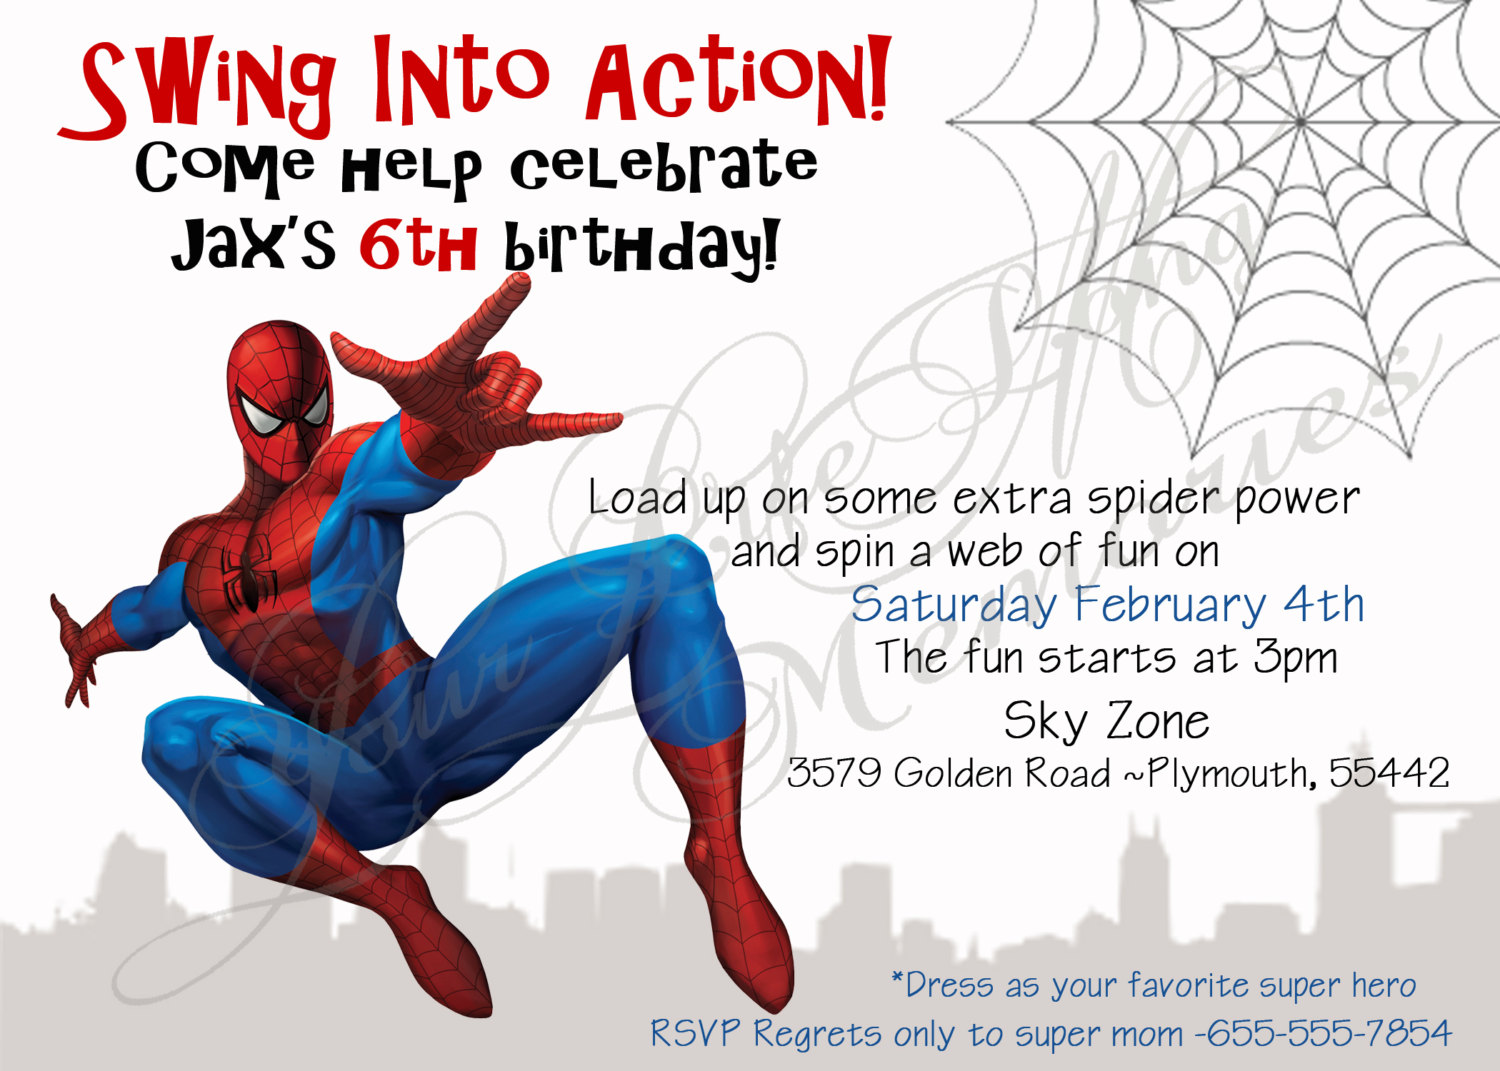 birthday invitations printable free online ; elegant_free_spiderman_birthday_invitations_templates_bonfire_with_ilustration_red_hd_size_amazing_idea_design_4_2